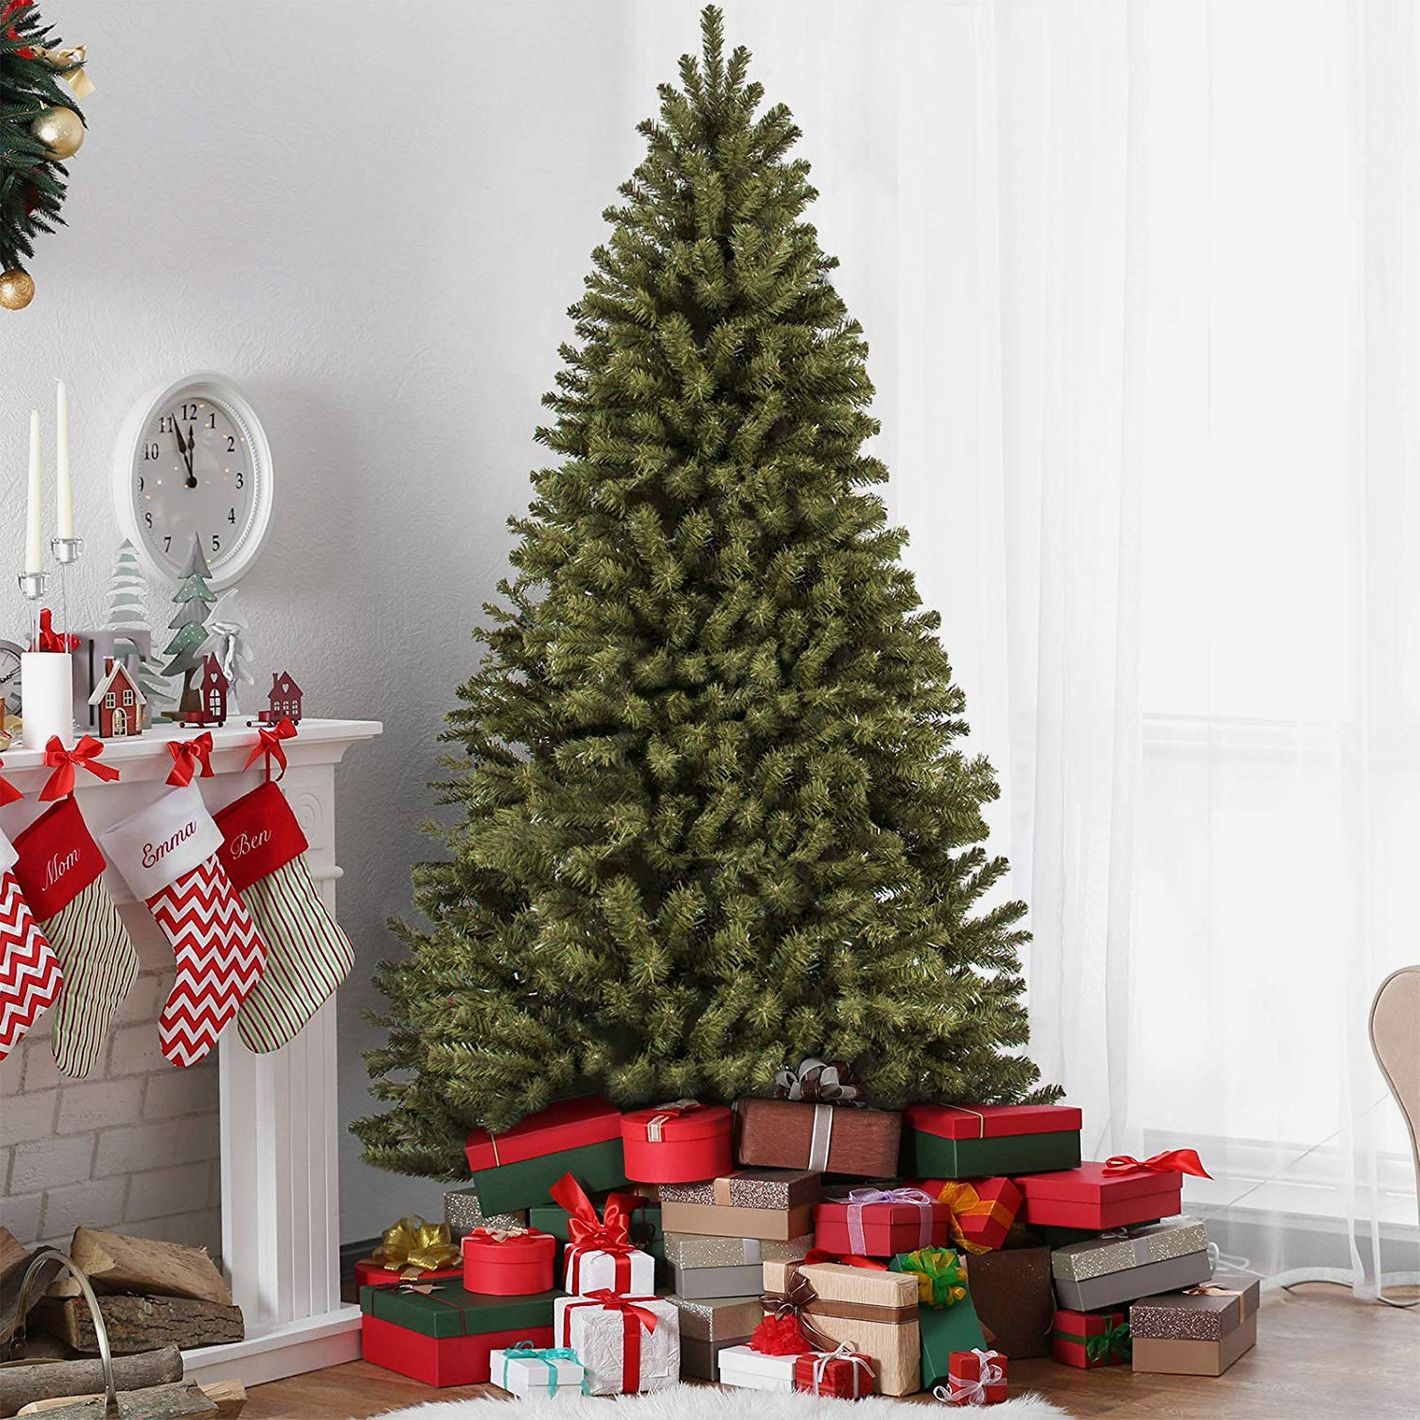 best choice products 75ft premium spruce hinged artificial christmas tree - How To Decorate A Christmas Tree Step By Step